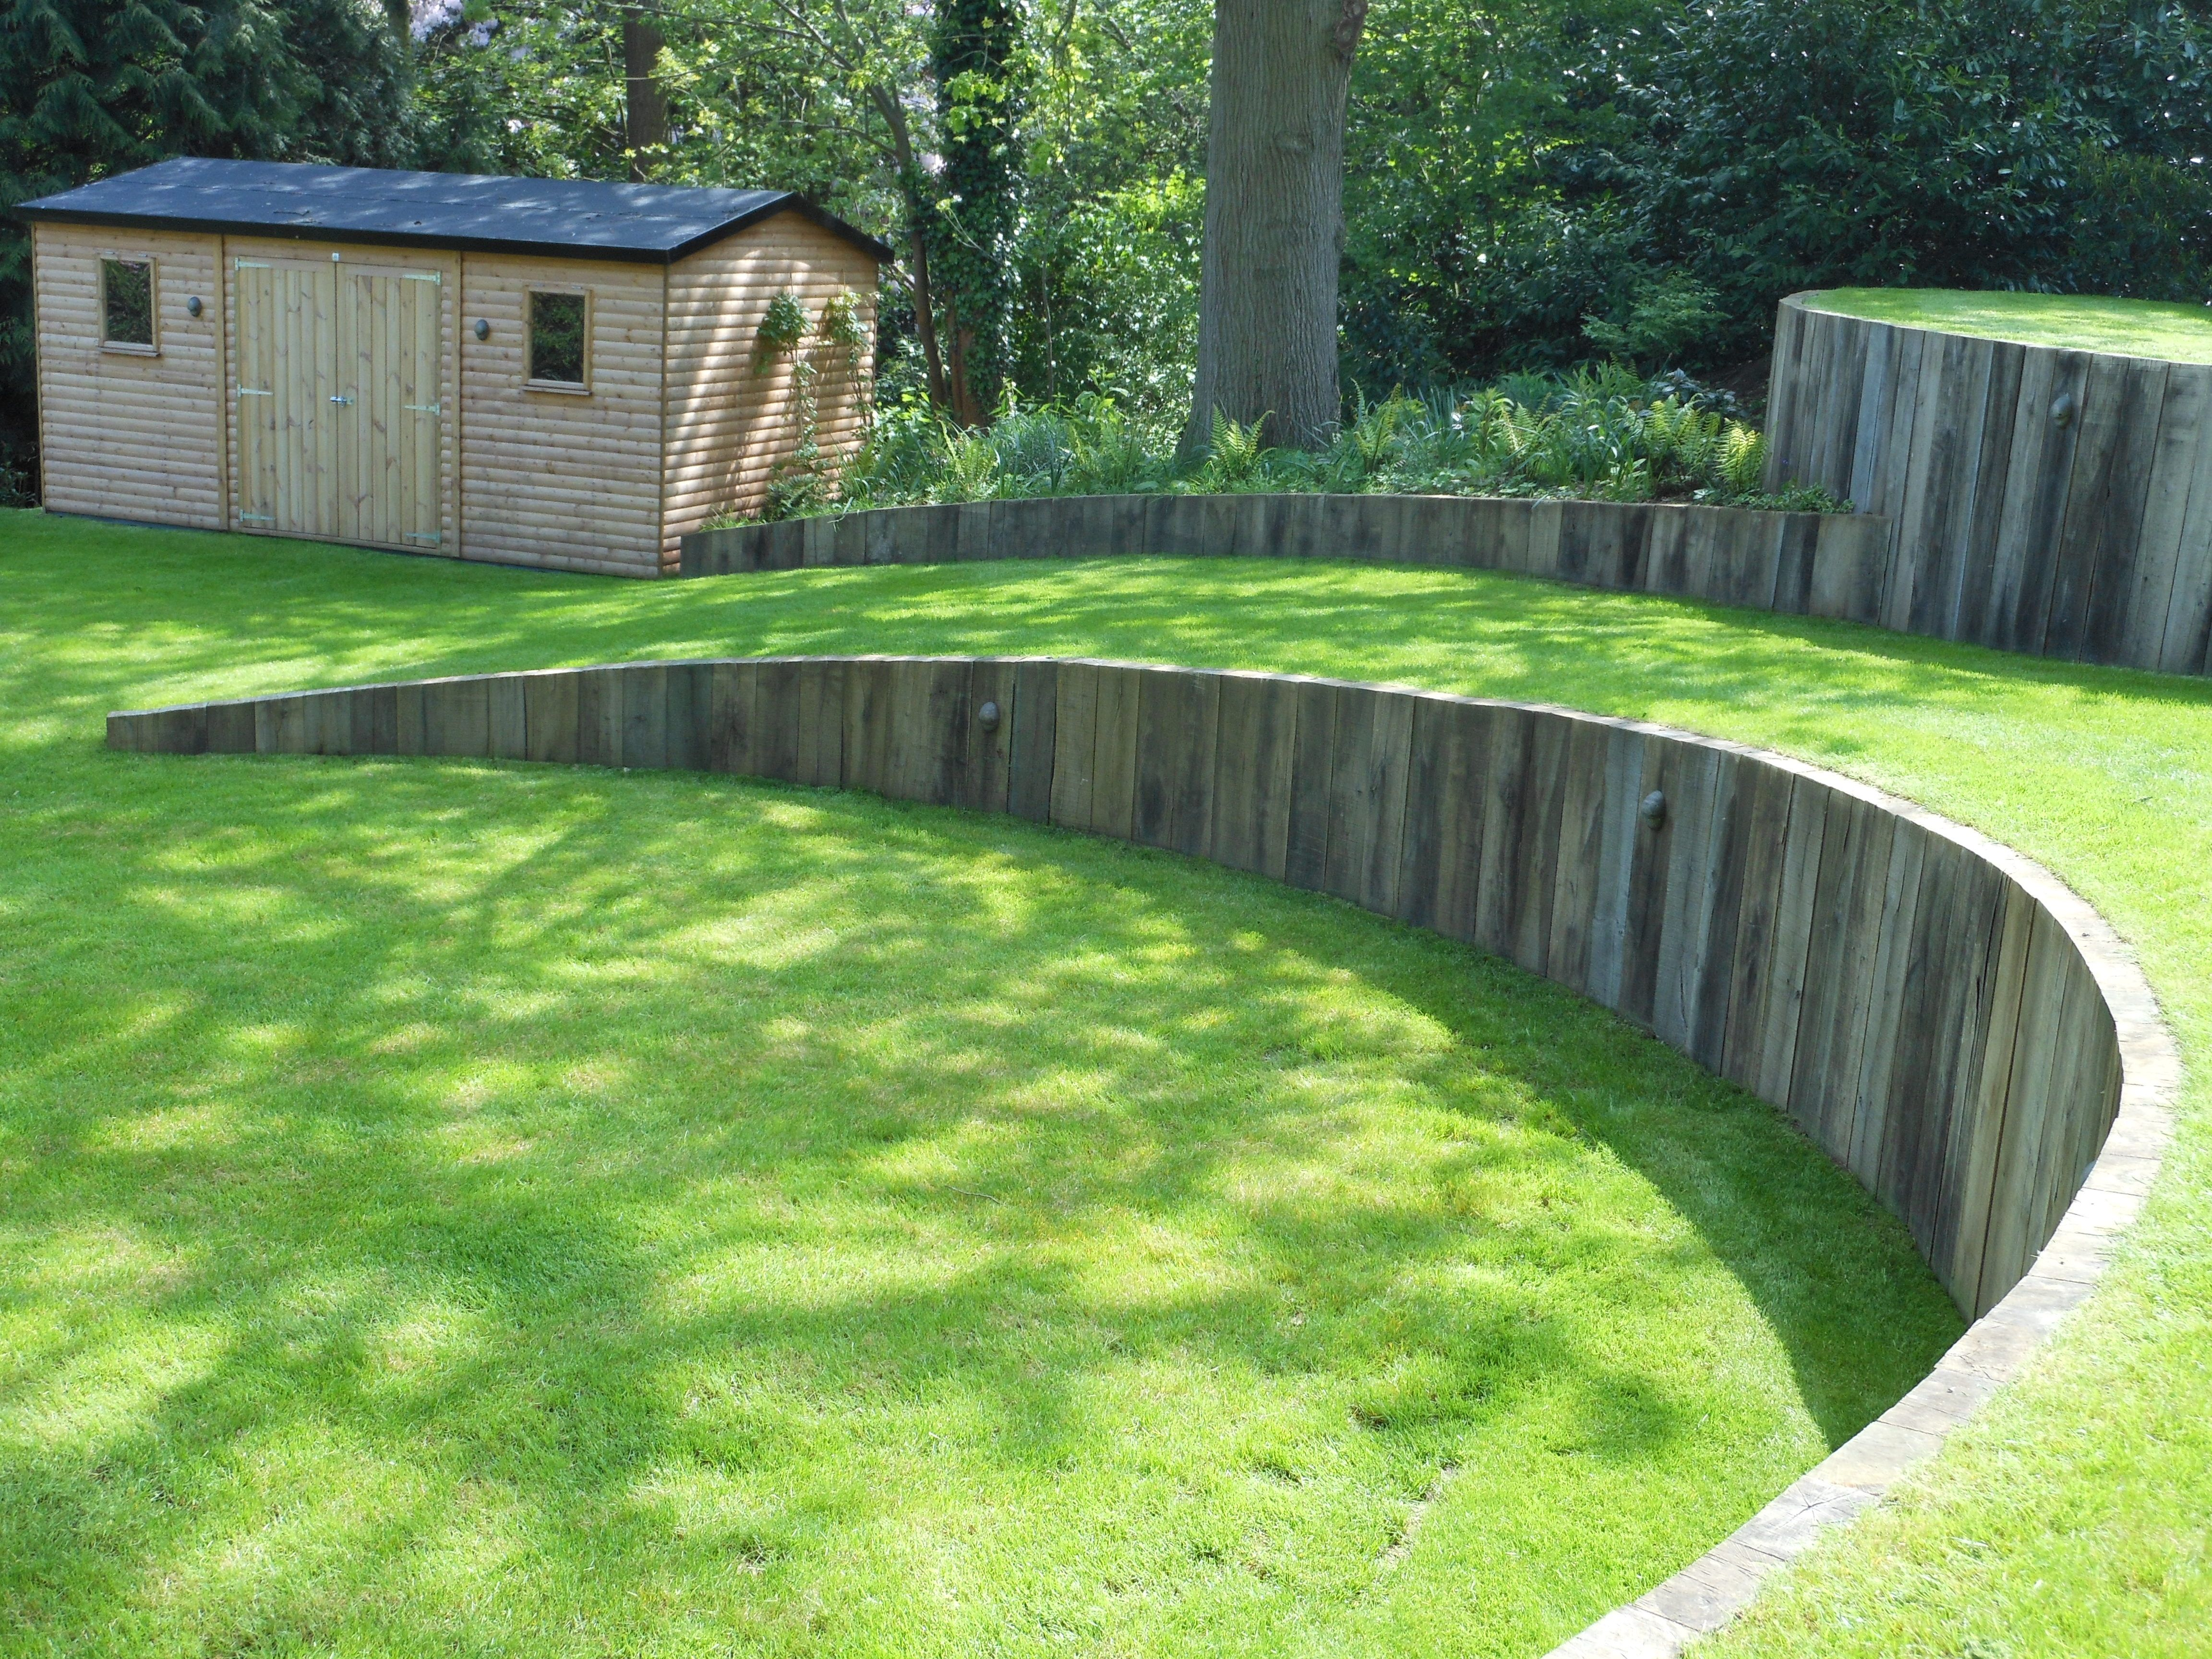 Gartenplanung Kleine Gärten Lawn Levels G Beautiful And Creative Garden Design